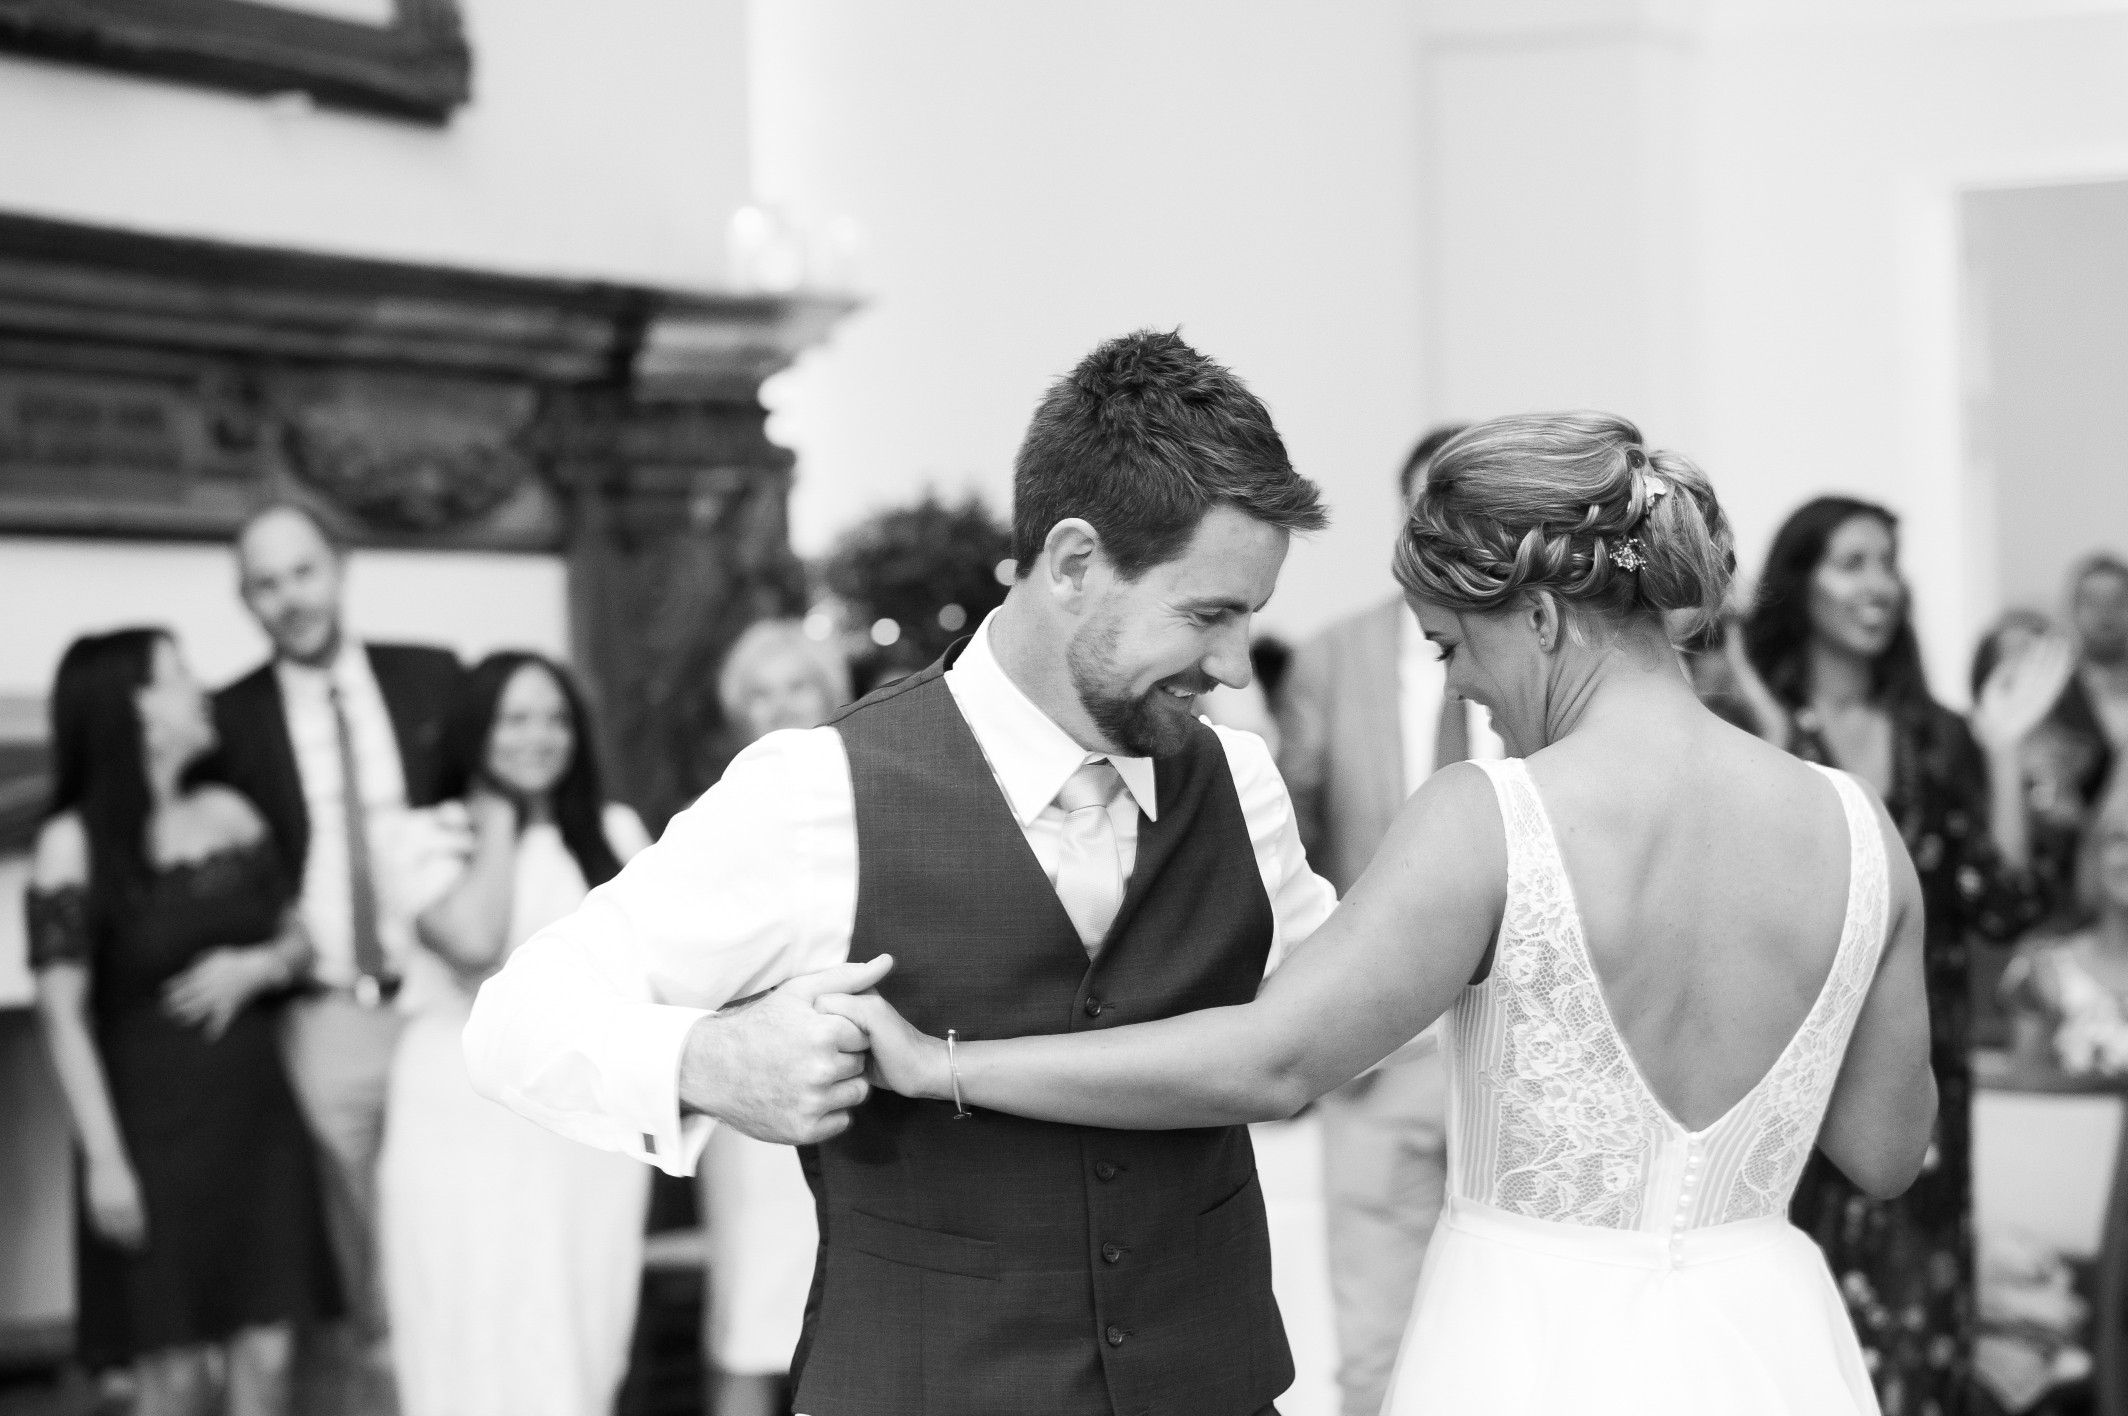 Wedding photography at Farnham Castle in Surrey - the bride and groom first dance